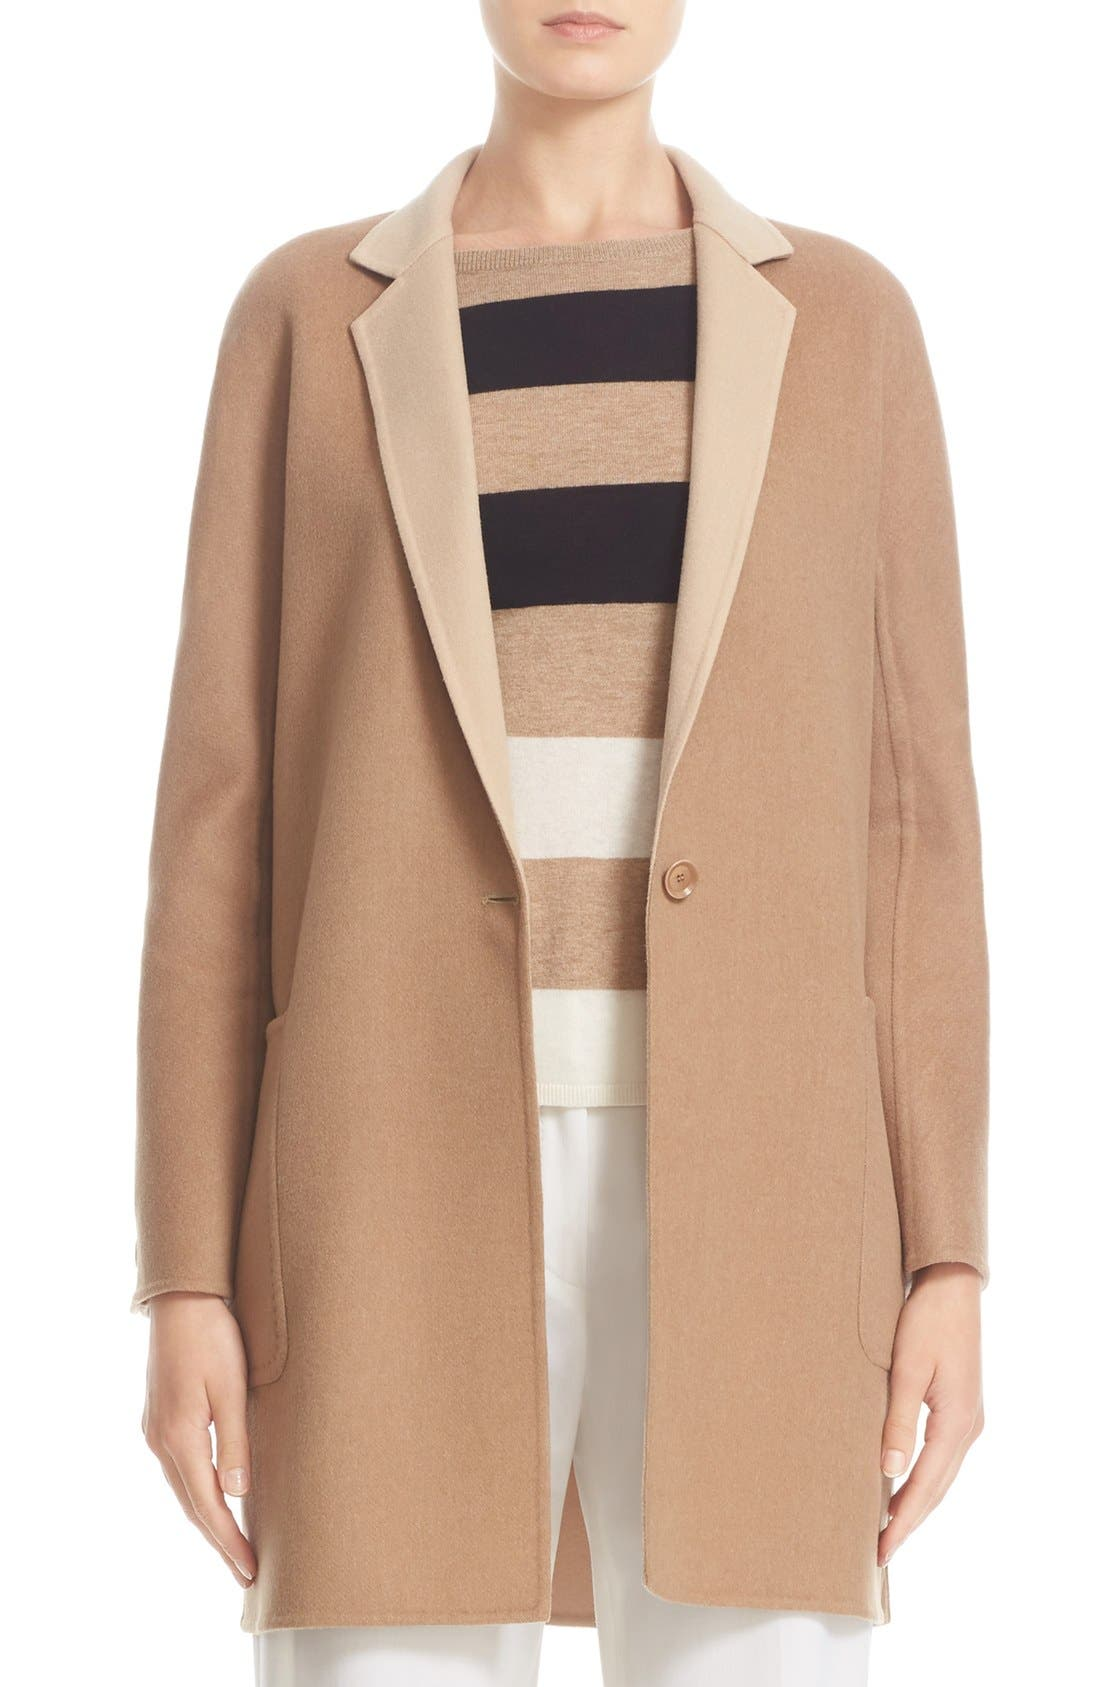 Alternate Image 1 Selected - Max Mara Lillo Wool & Cashmere Bicolor Coat